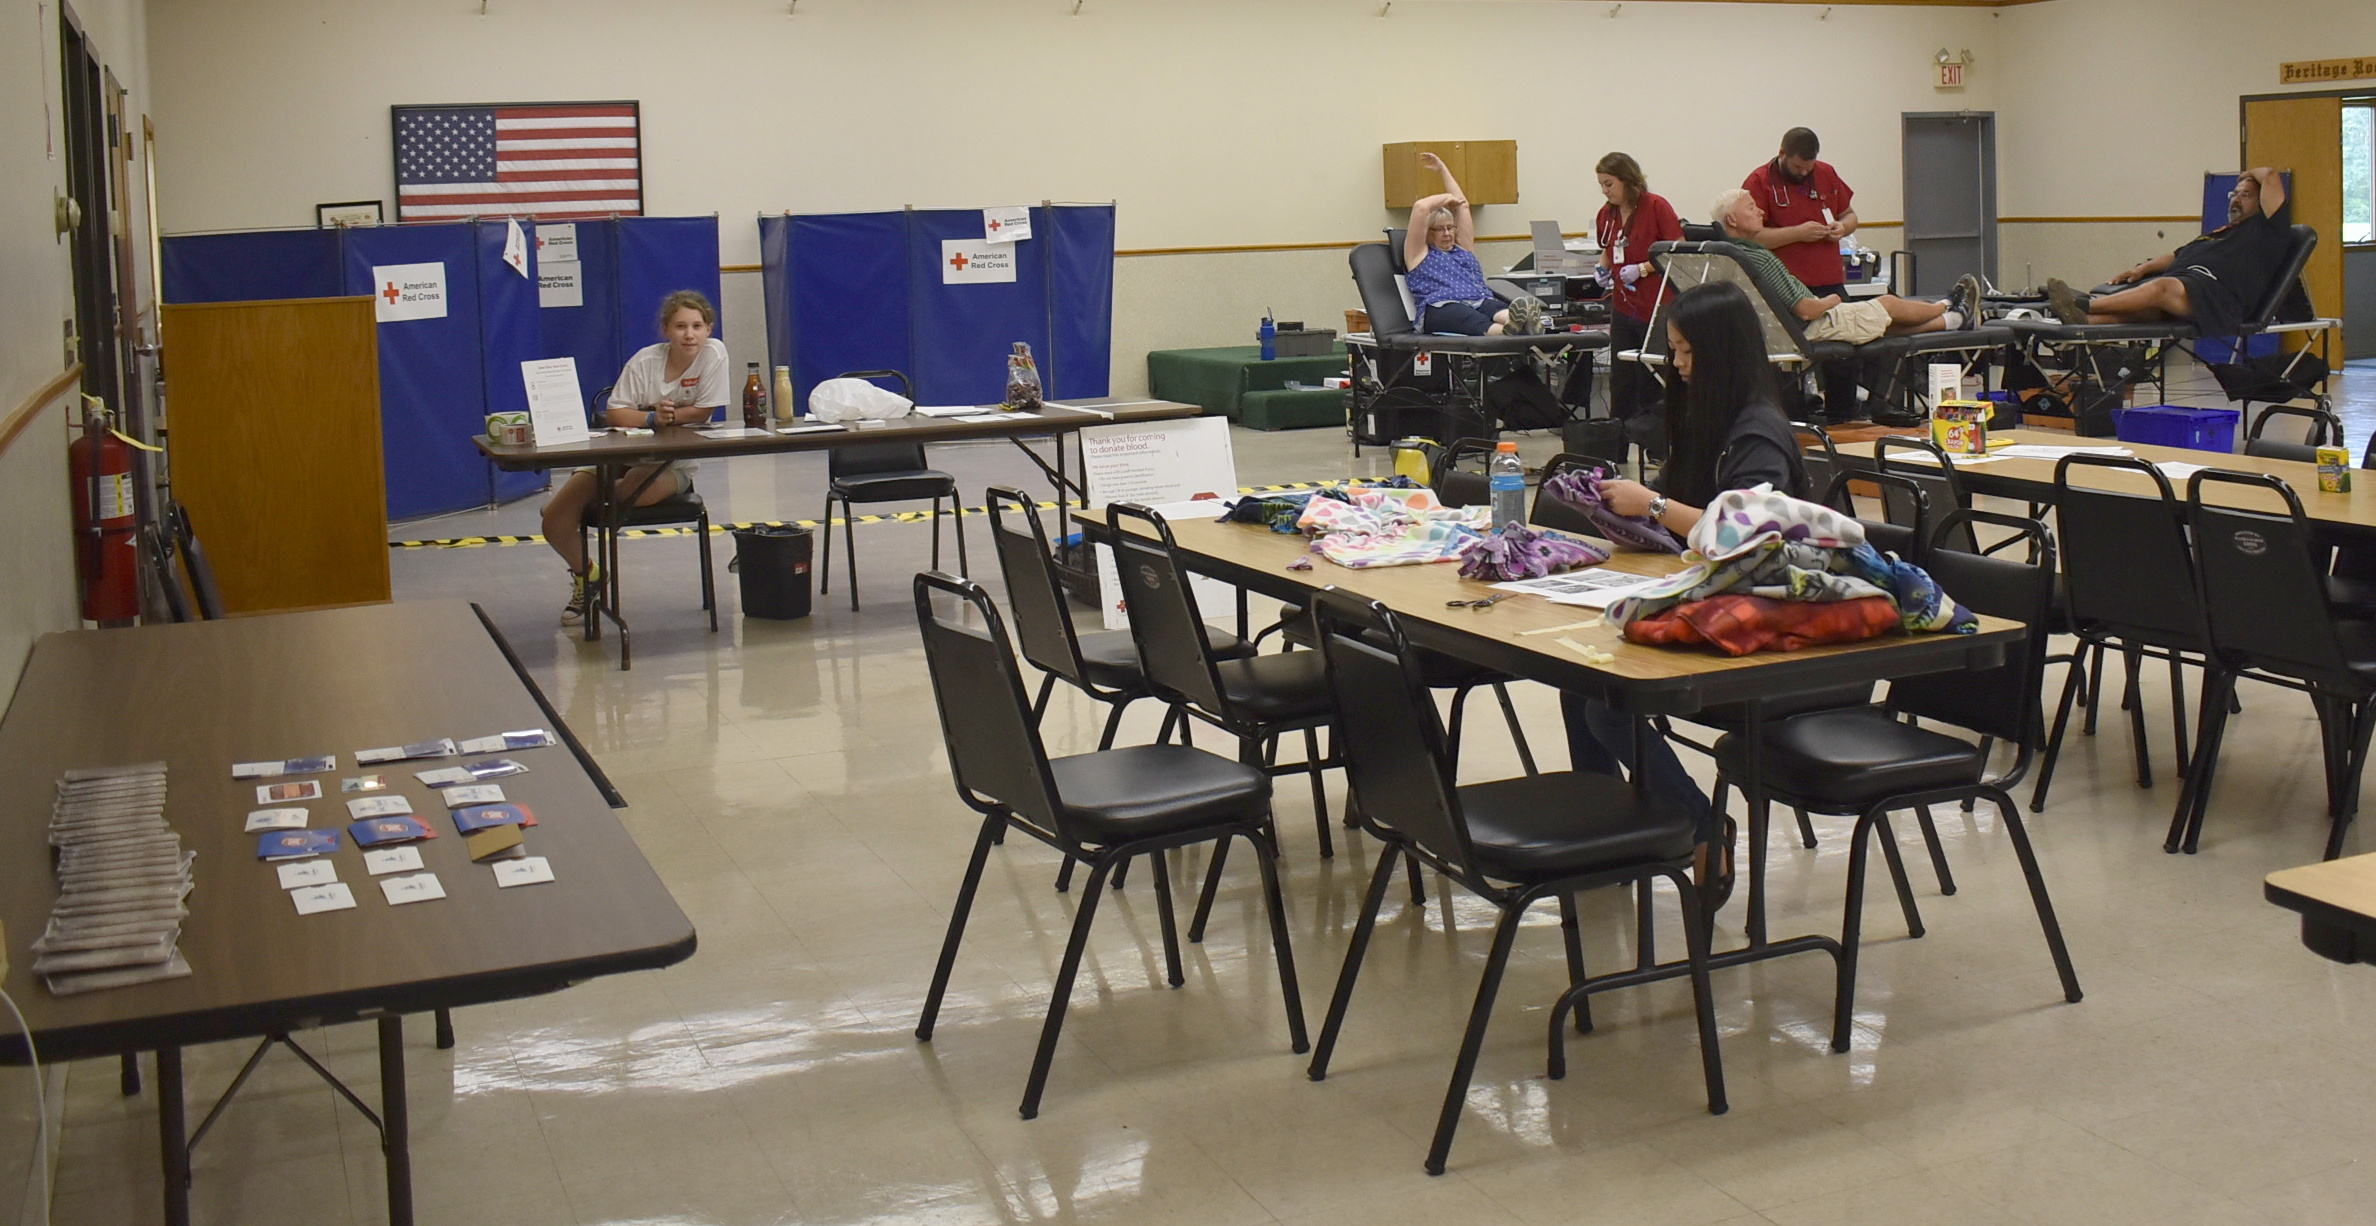 Three blood donors were donating blood (for a total of 26 donors), no-sew fleece-tied hats were made for children with cancer undergoing chemotherapy, and sheets were colored for Color-a-Smile at the Scandia Community Center on July 11, 2018.